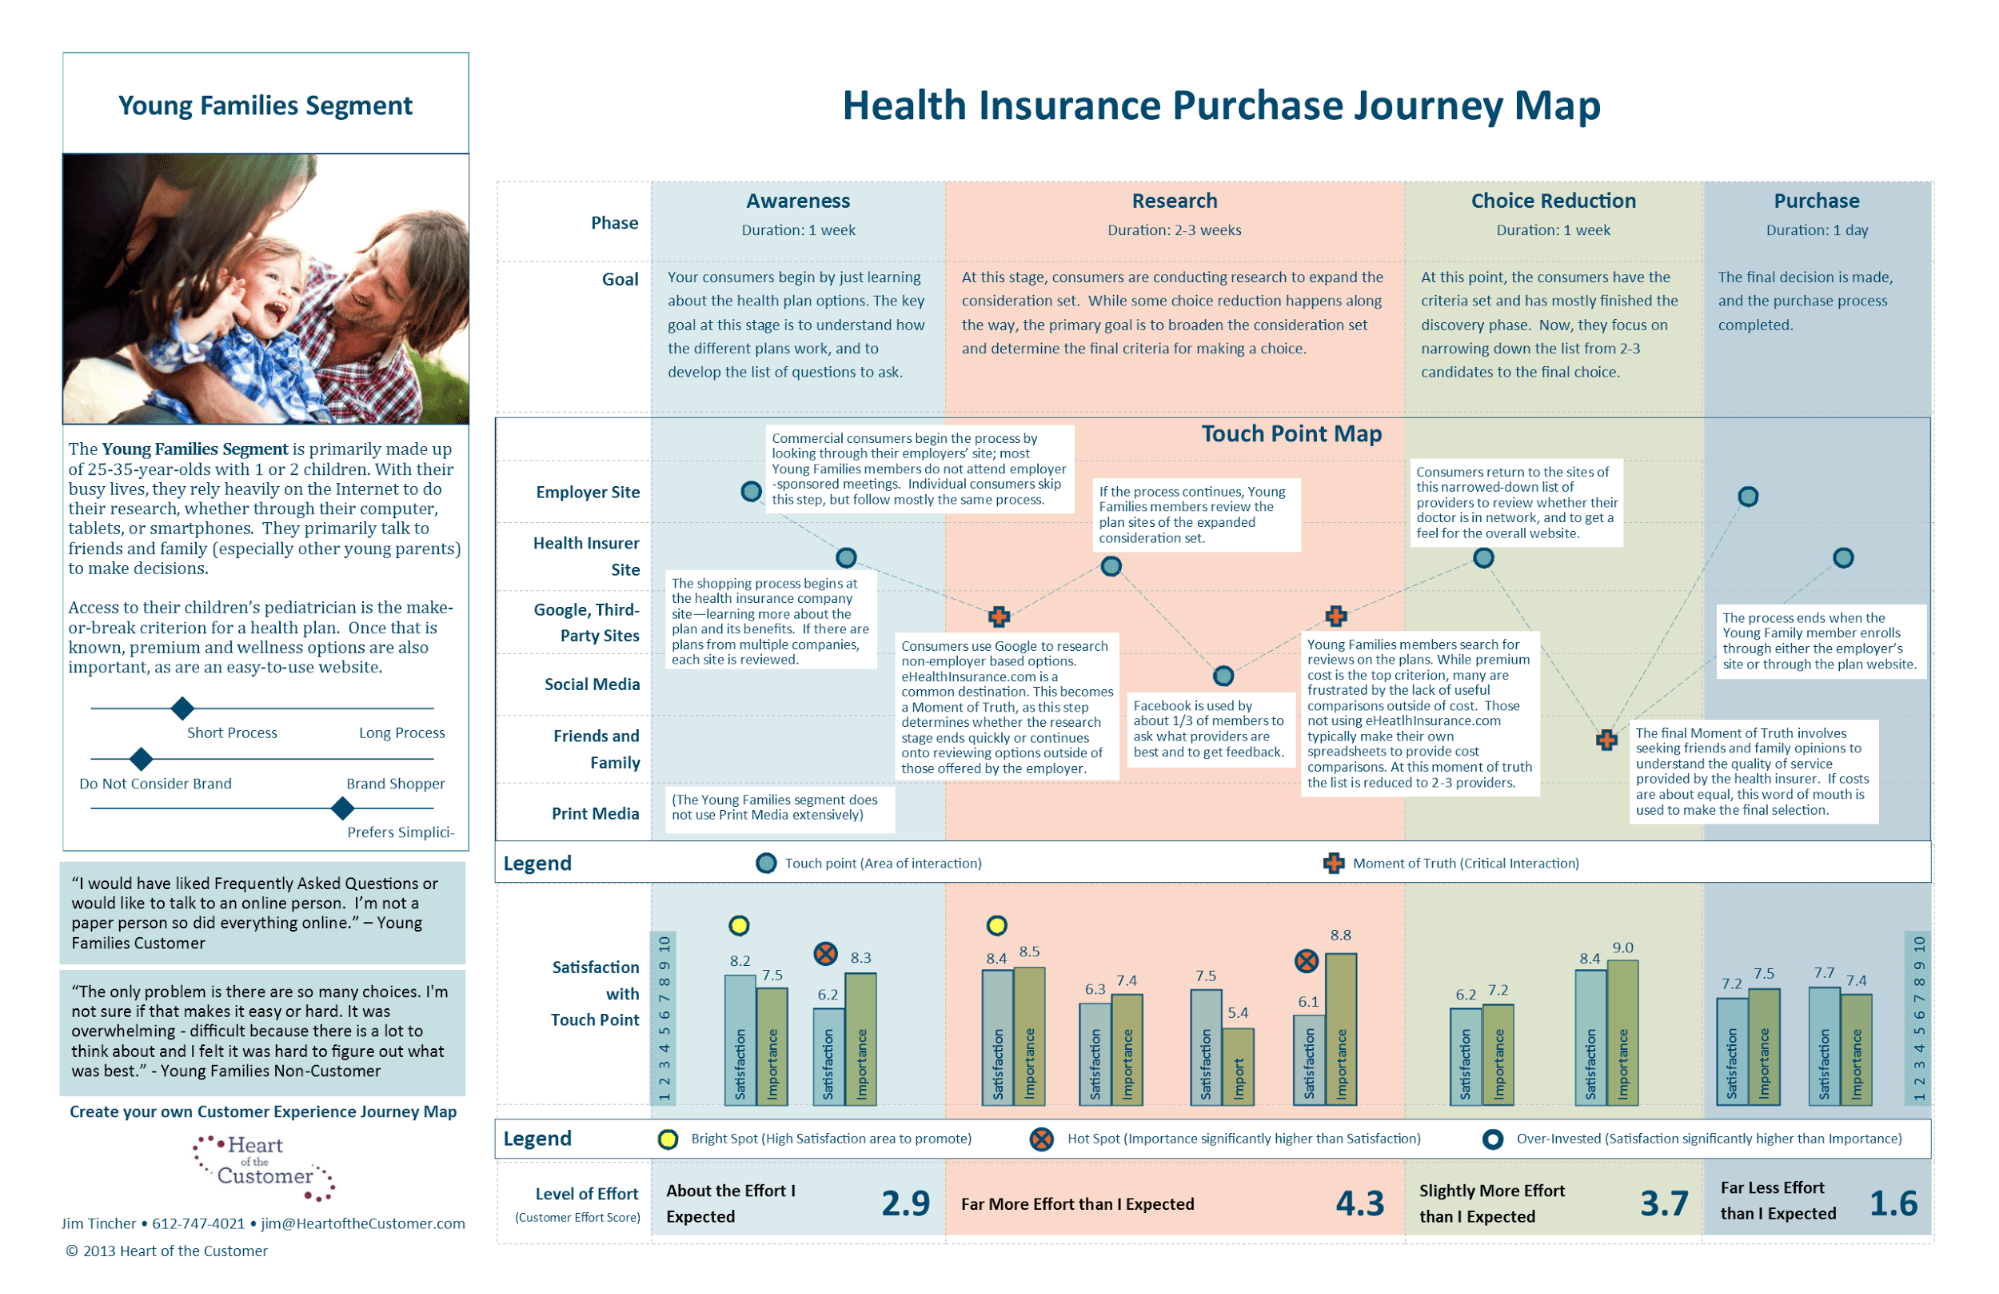 Health insurance journey map